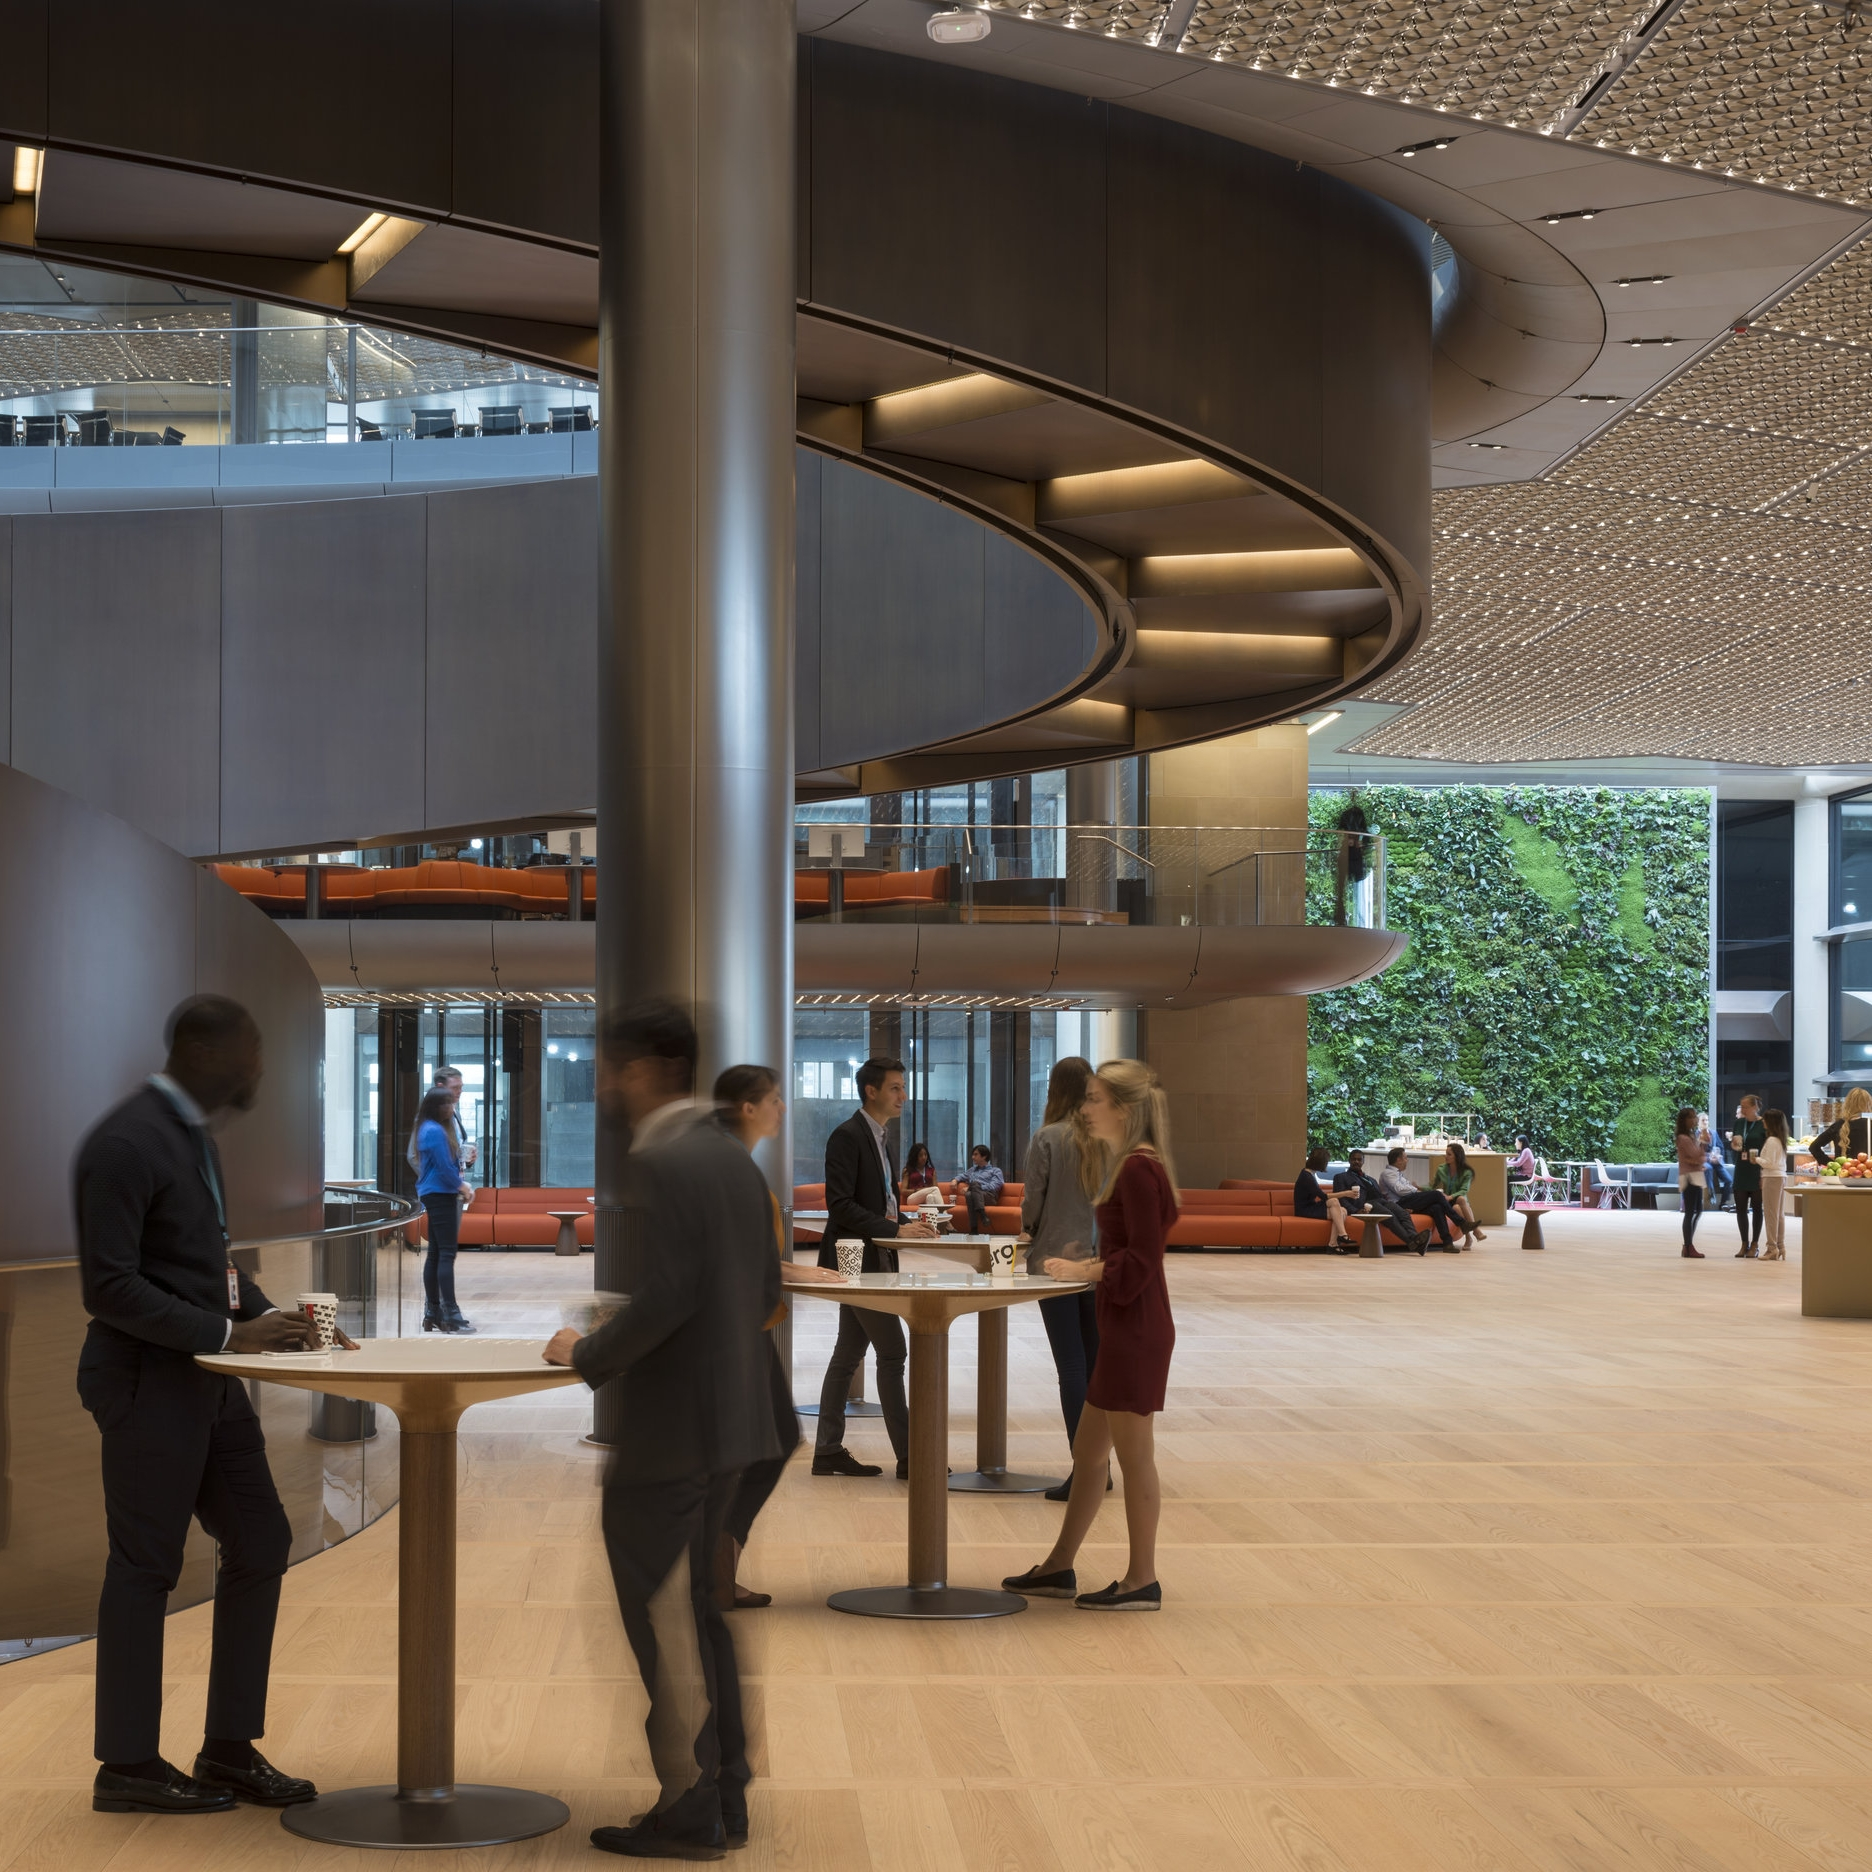 Bloomberg, London   A bespoke design of FlowBar was specified for the new European Bloomberg HQ in London, adapted to fit a special application to run inside the ceiling lighting channels of the foyer.   Find out other ways Swegon was involved in the project...